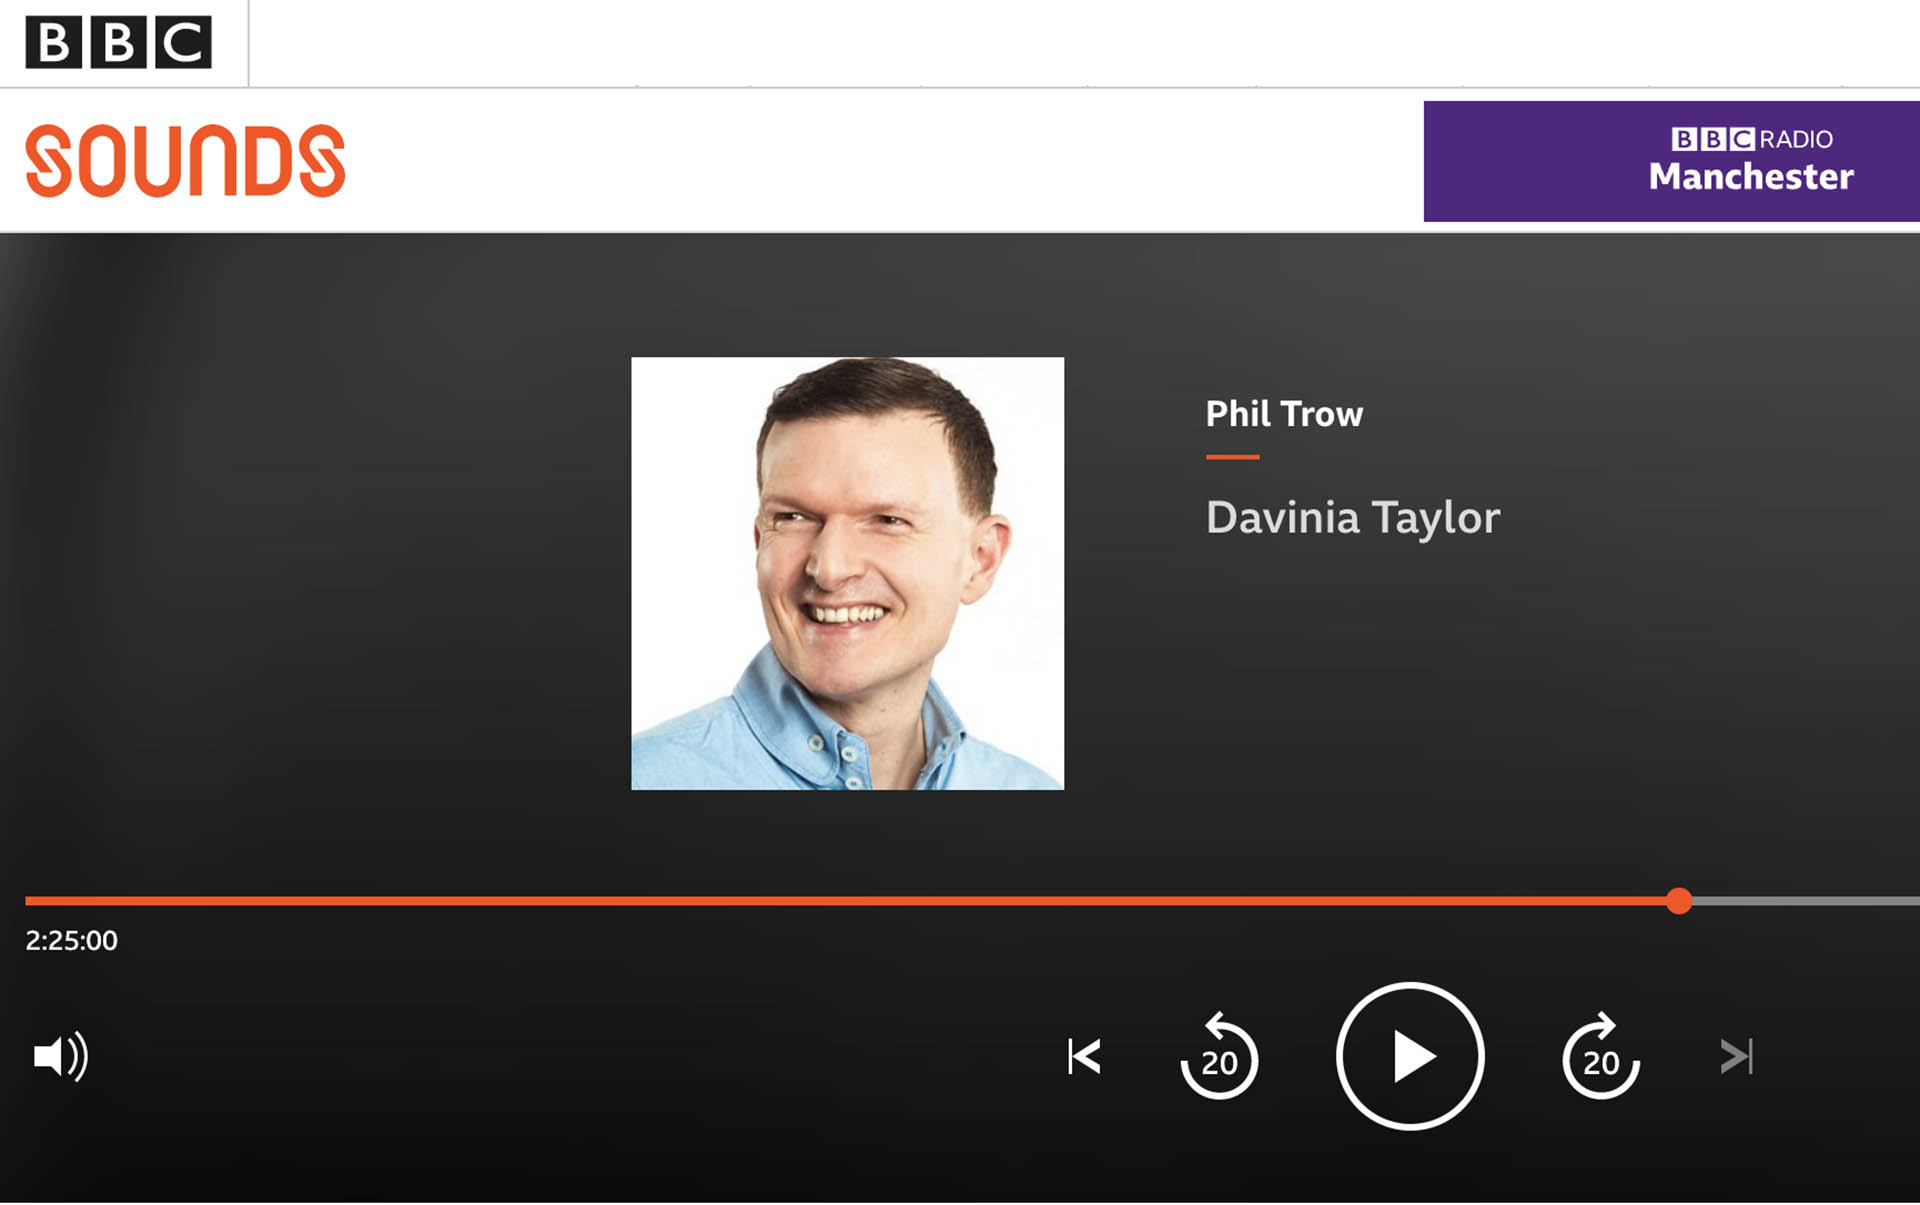 Liz talks to BBC Radio Manchester's Phil Trow about the stories and trends that have made the news and set social media talking.   Click to 2:25 into the show:  Phil Trow - Davinia Taylor - BBC Sounds